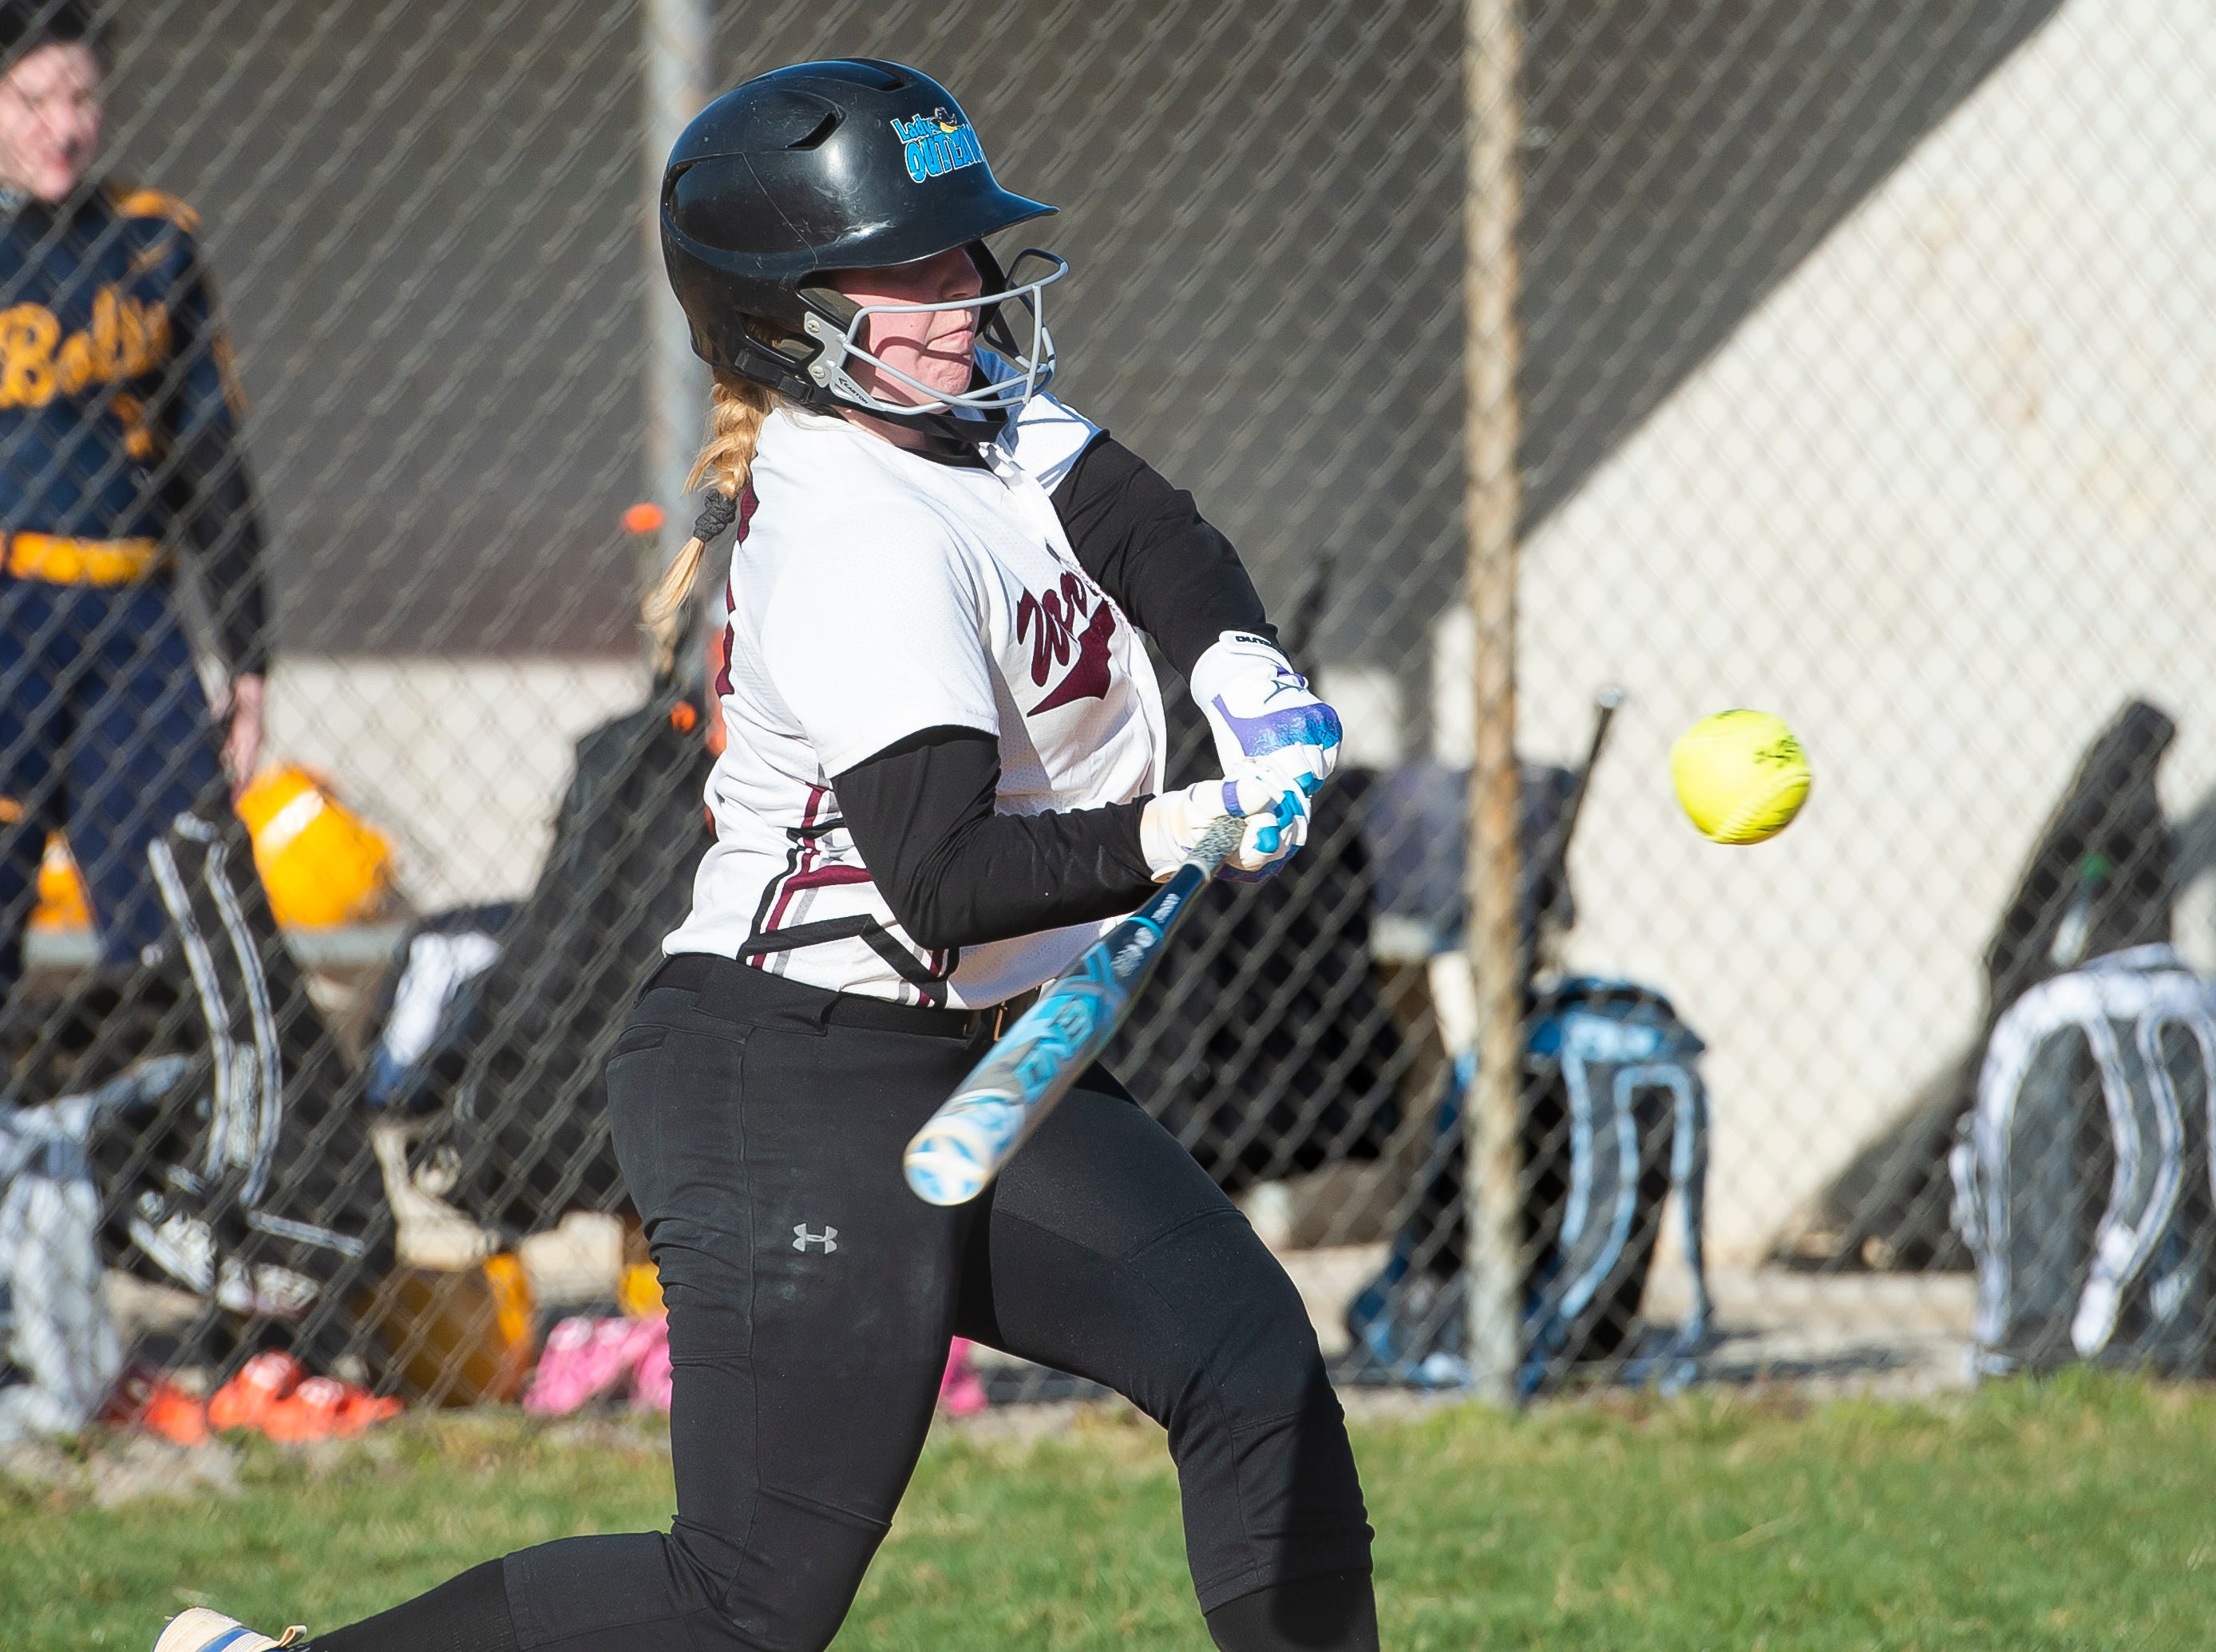 Gettysburg's Faith Boone swings on a pitch during a YAIAA softball game against Littlestown on Monday, April 1, 2019. The Warriors fell 10-4.